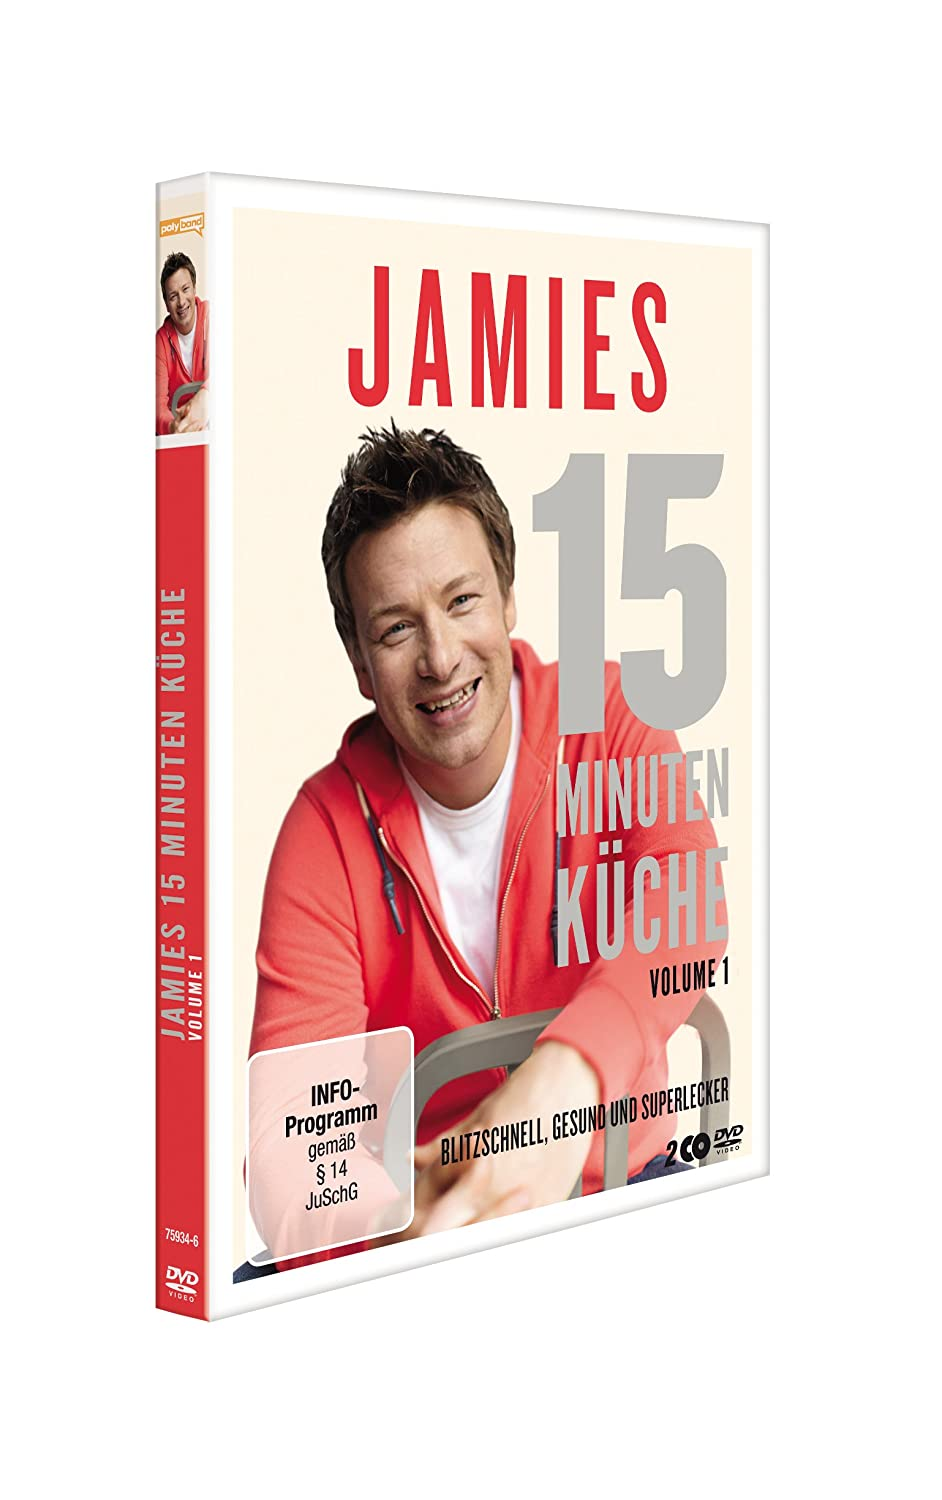 Jamies 15 Minuten Küche - Volume 1 [2 DVDs]: Amazon.de ...